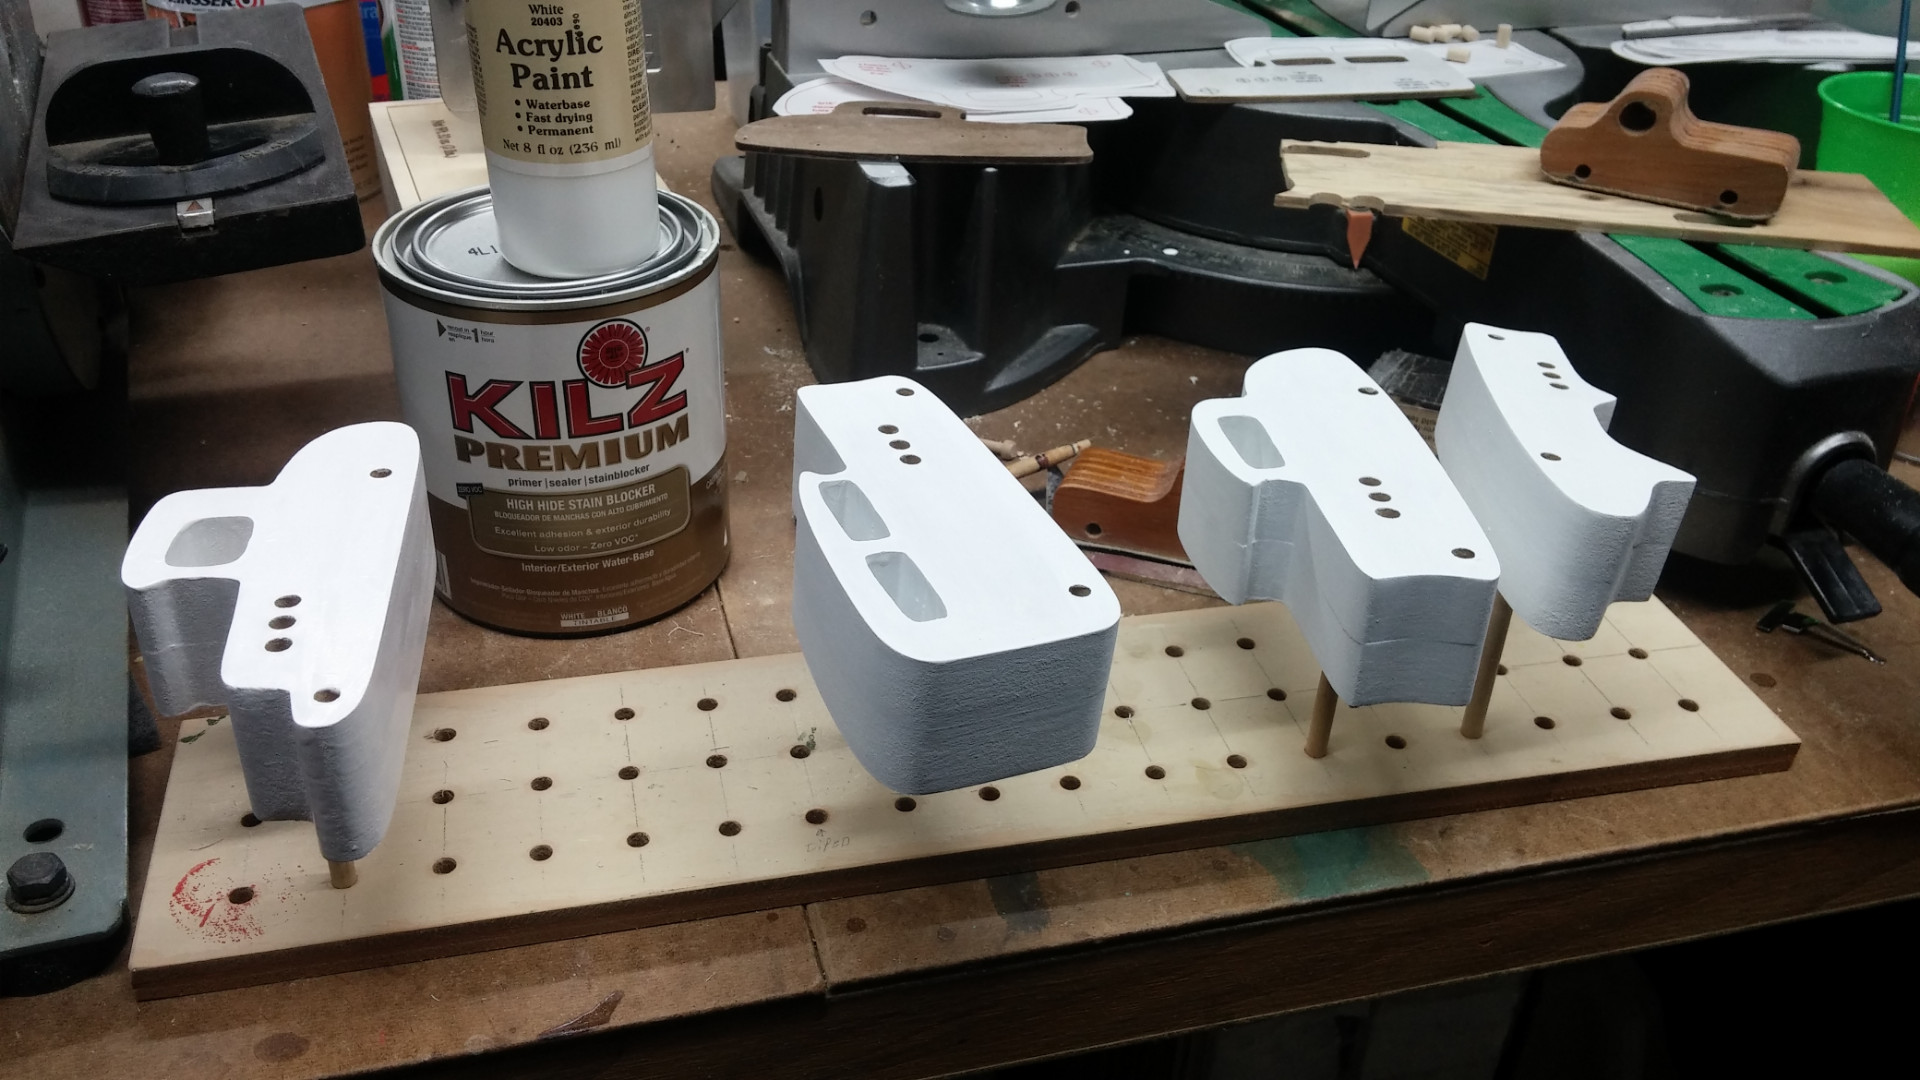 20151210-175340 198 Toymakers Shop Parts Holding Jig Holding Hot Rod F.jpg